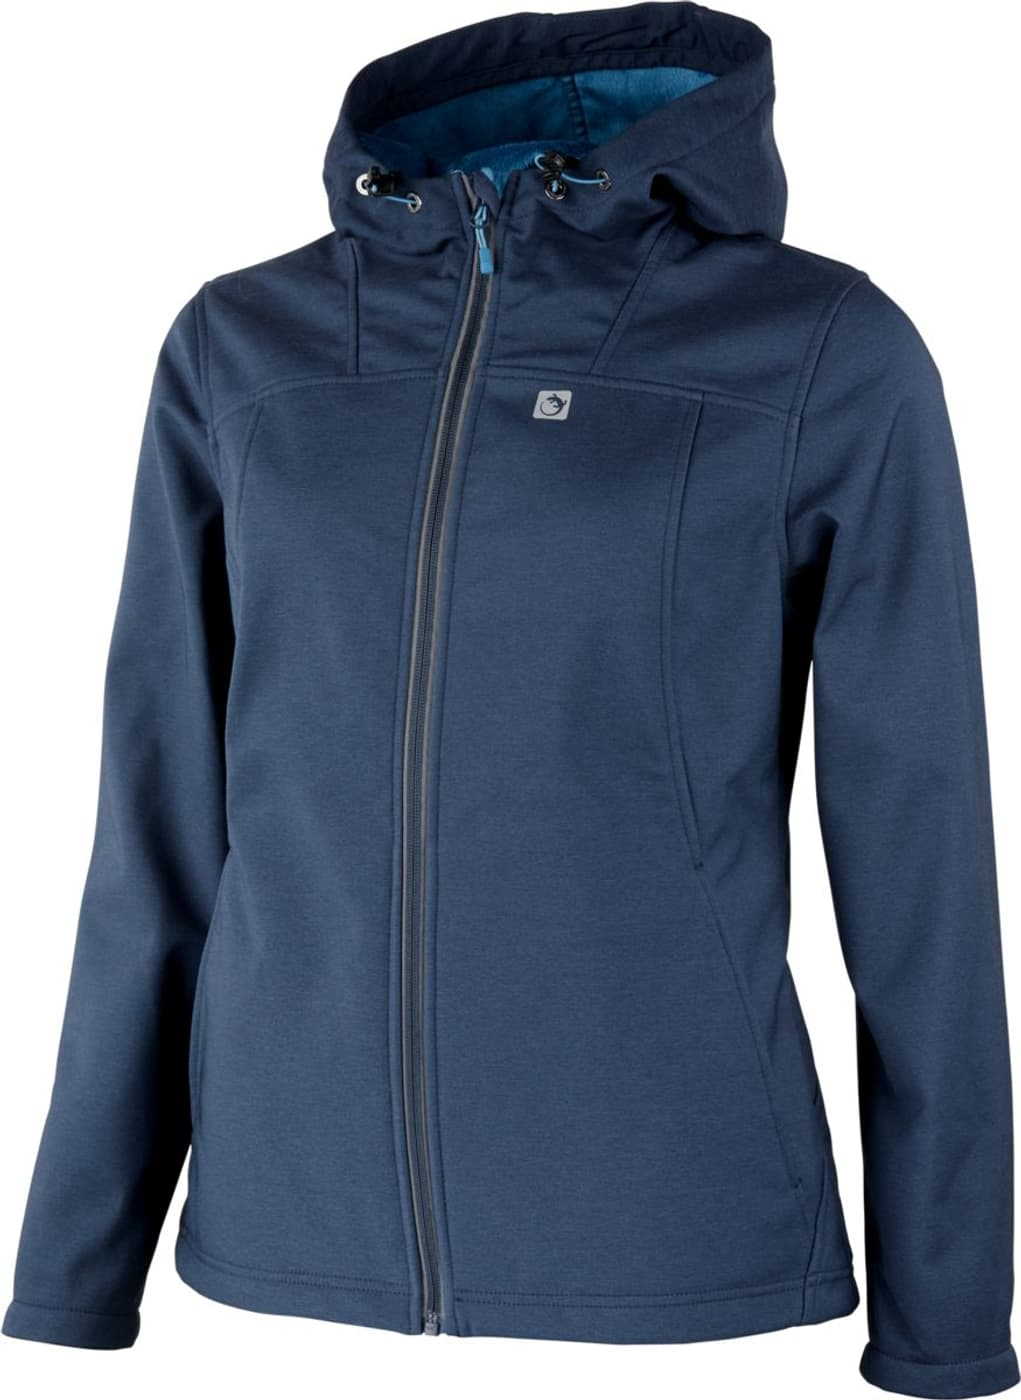 new product 211be e6ee1 Trevolution Xea Giacca Softshell da donna